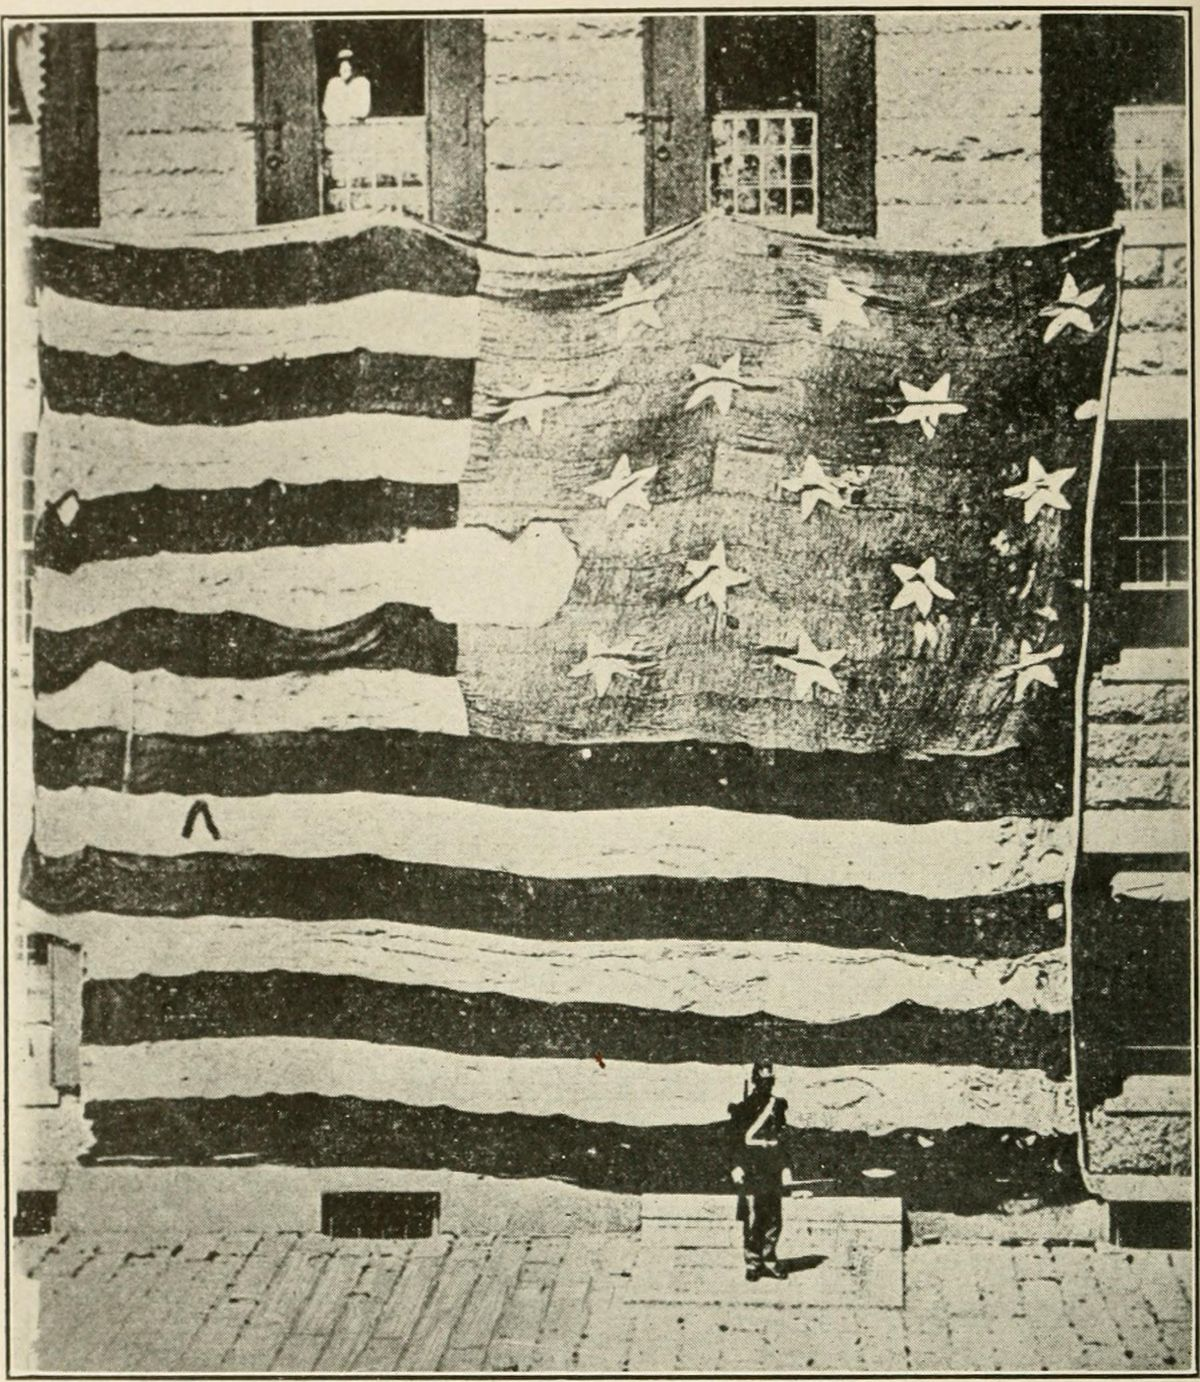 Garrison flag that flew over Fort McHenry in 1814